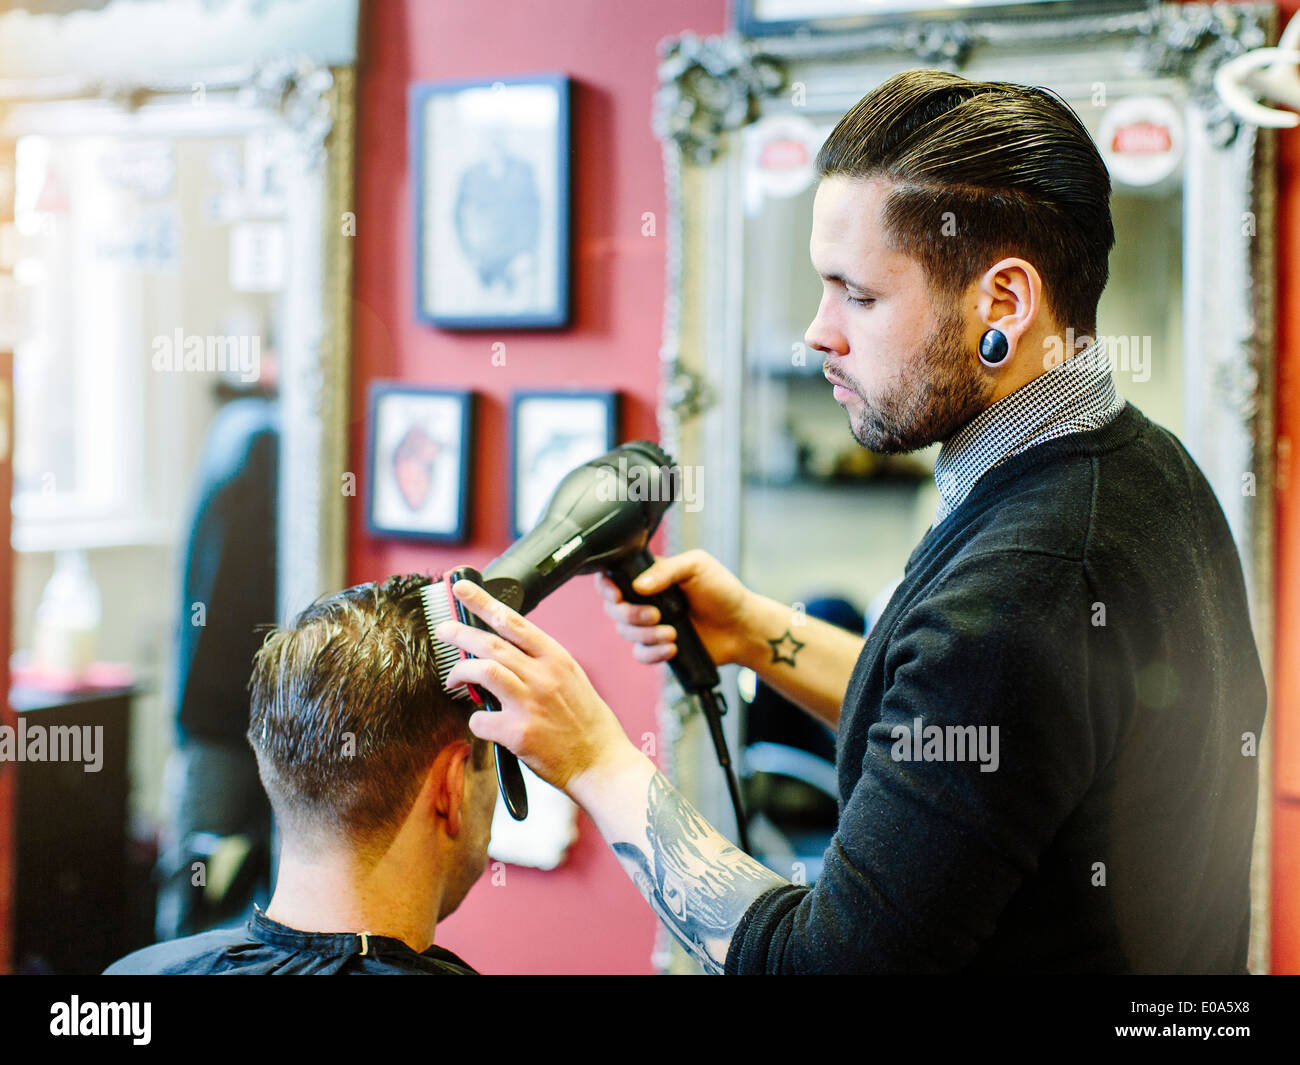 Barber blow drying clients hair - Stock Image